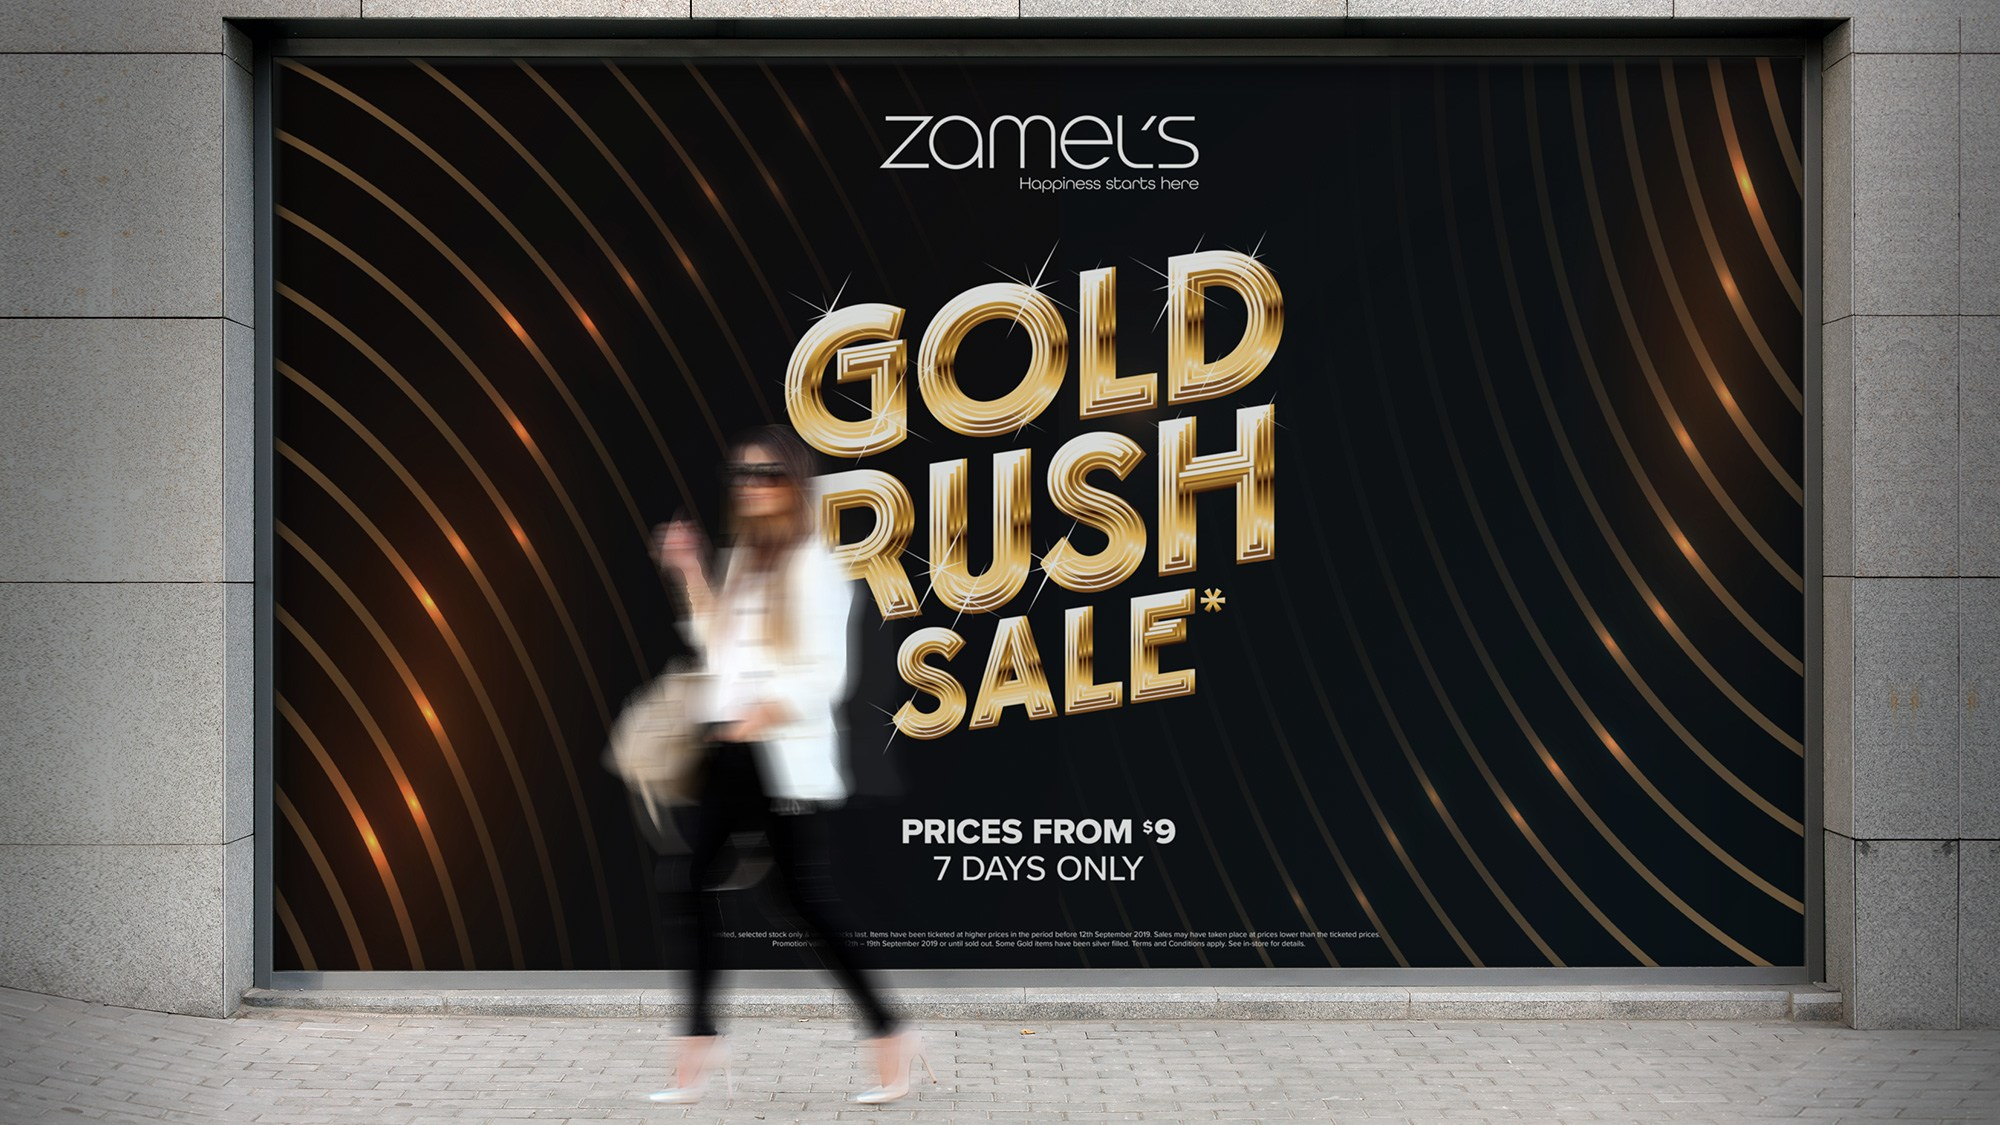 Zamel's Gold Rush Advertising Outdoor Window Decal